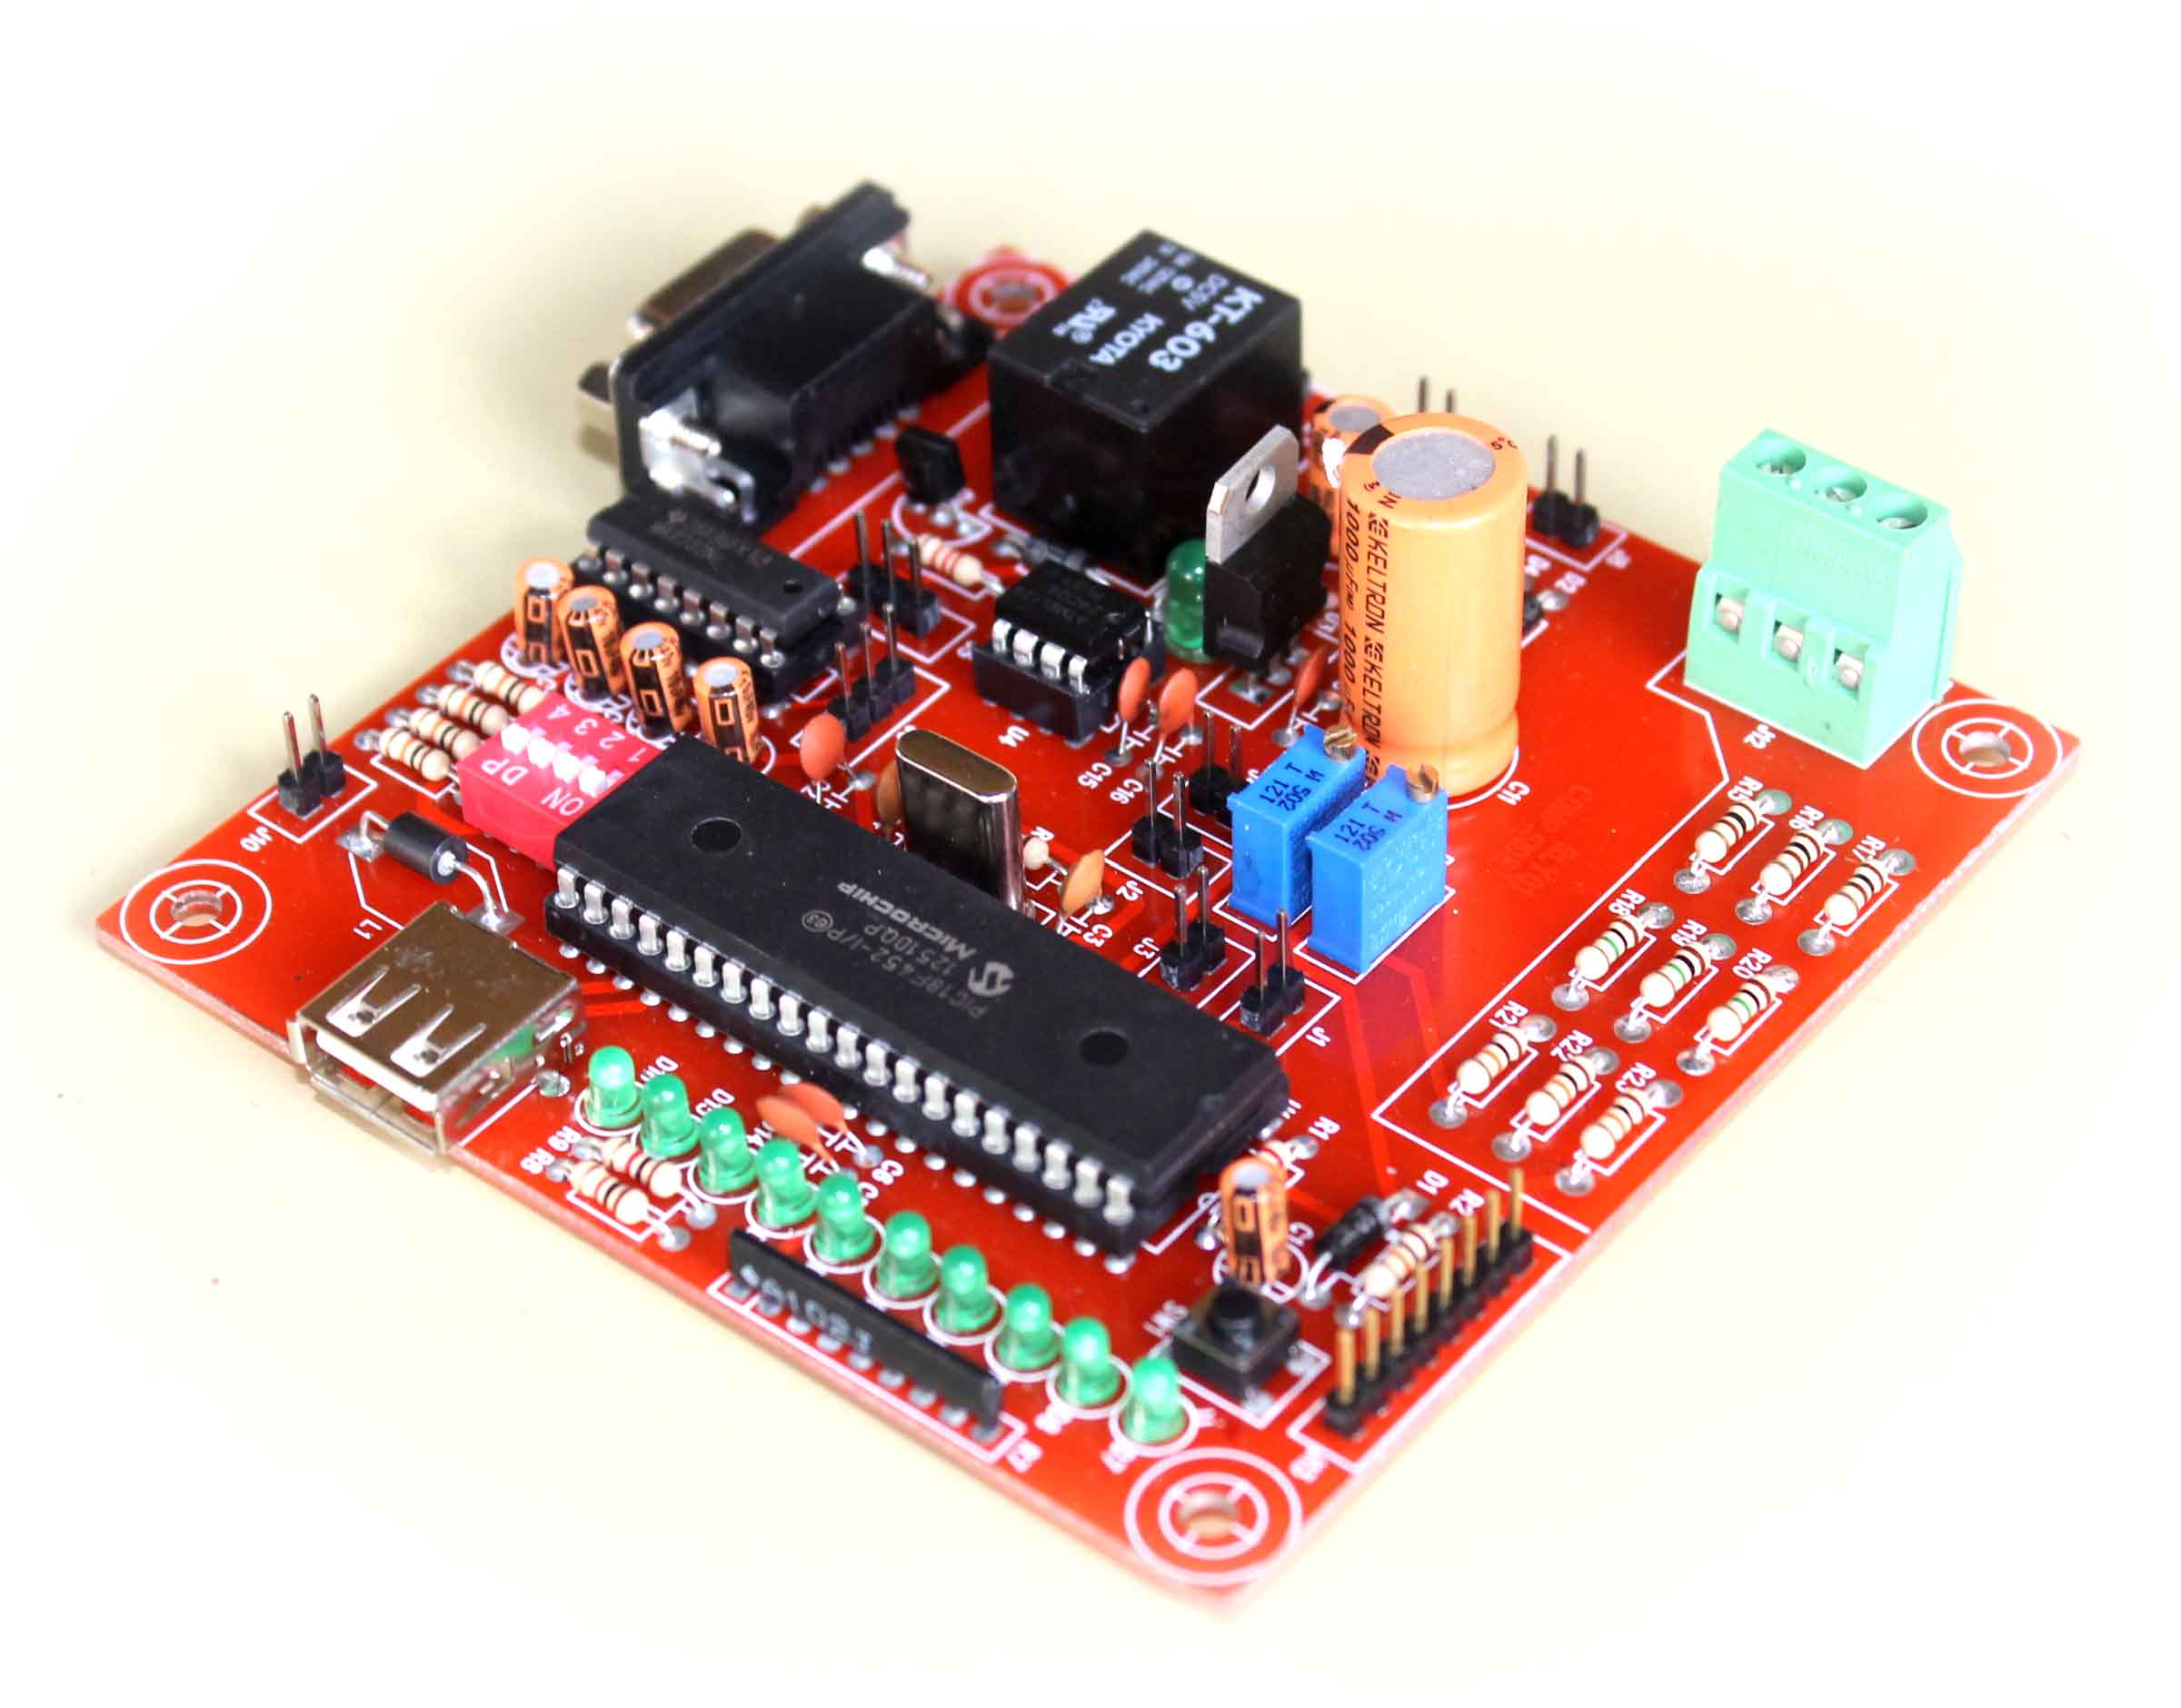 Einnovation Technologies Pvt Ltd Electronic Circuit Design Pune Pic Development Board Is Proposed To Smooth The Progress Of Developing And Debugging Various Designs Encompassing Microcontrollers